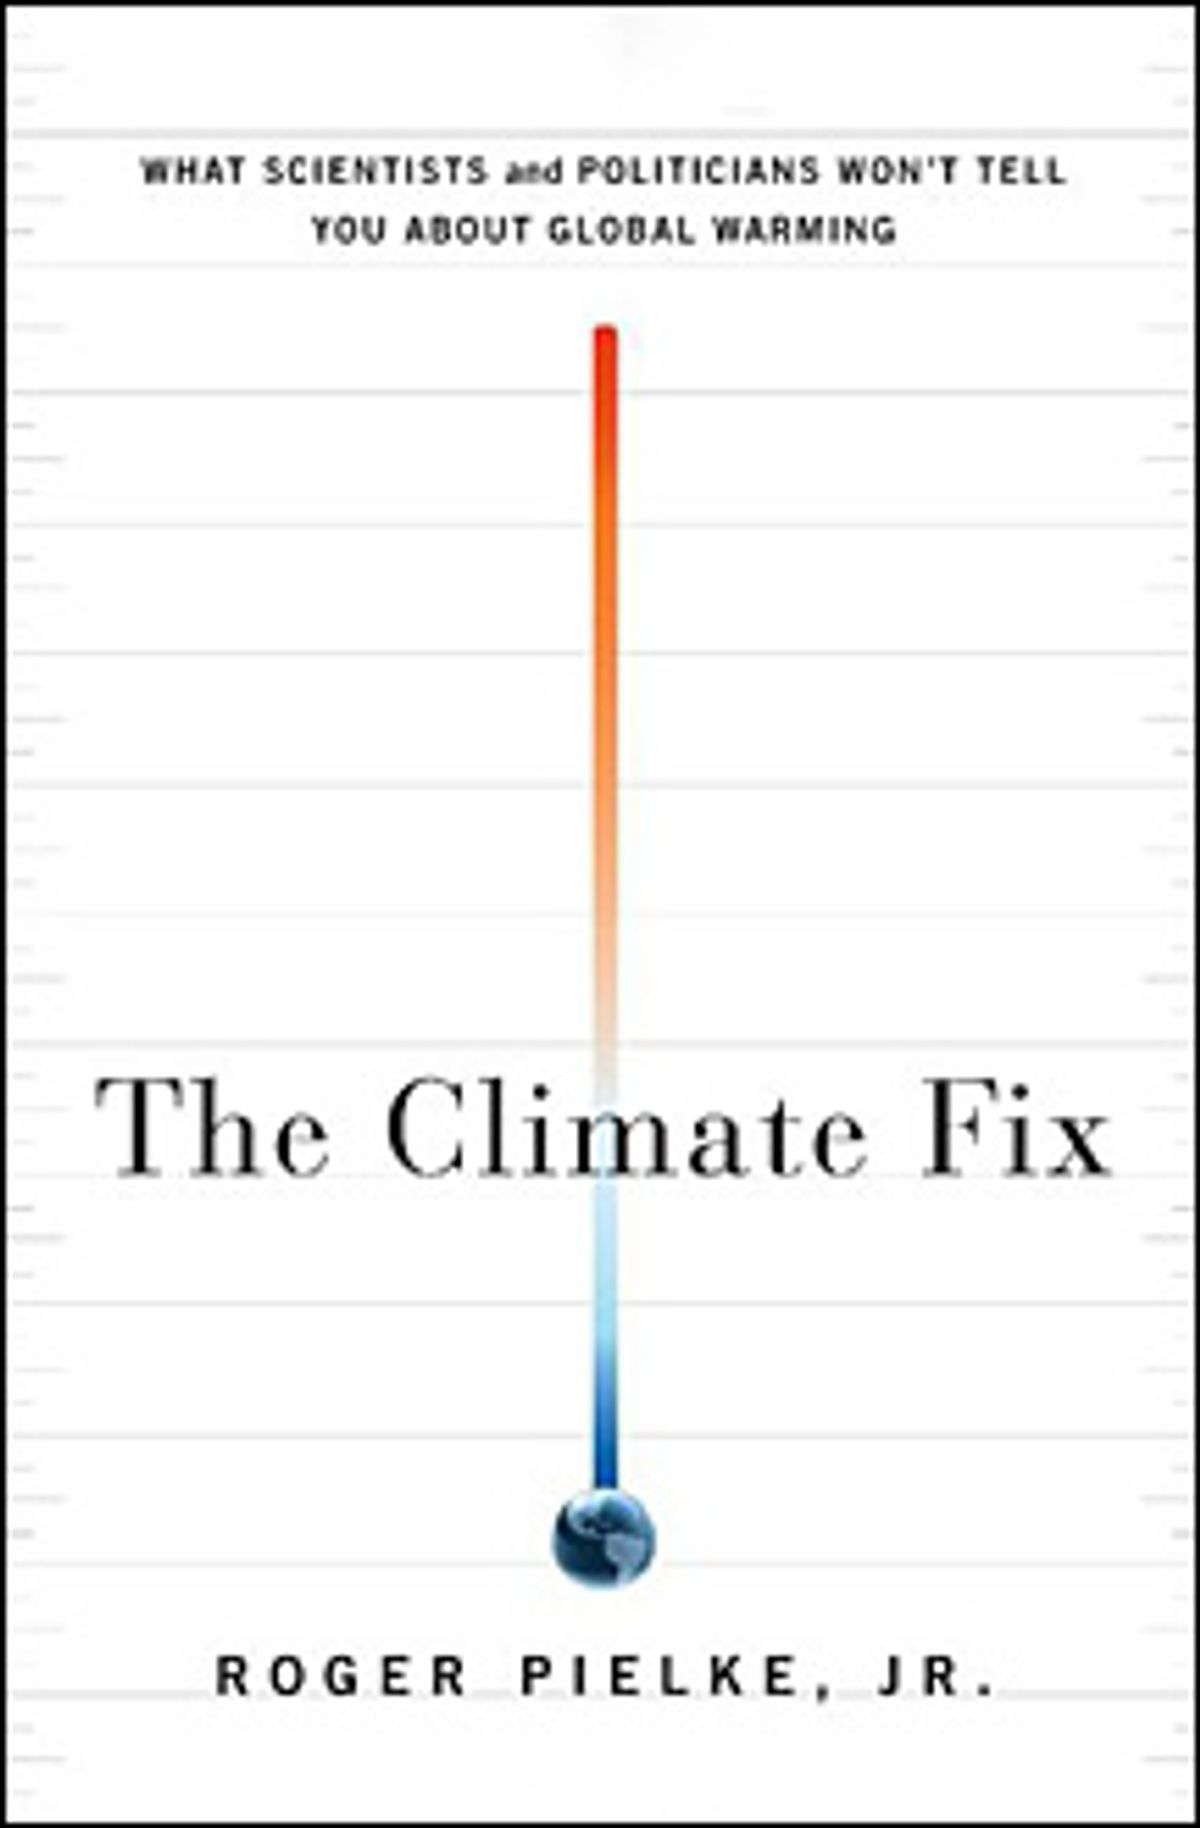 Book Review: The Climate Fix: What Scientists and Politicians Won't Tell You About Global Warming